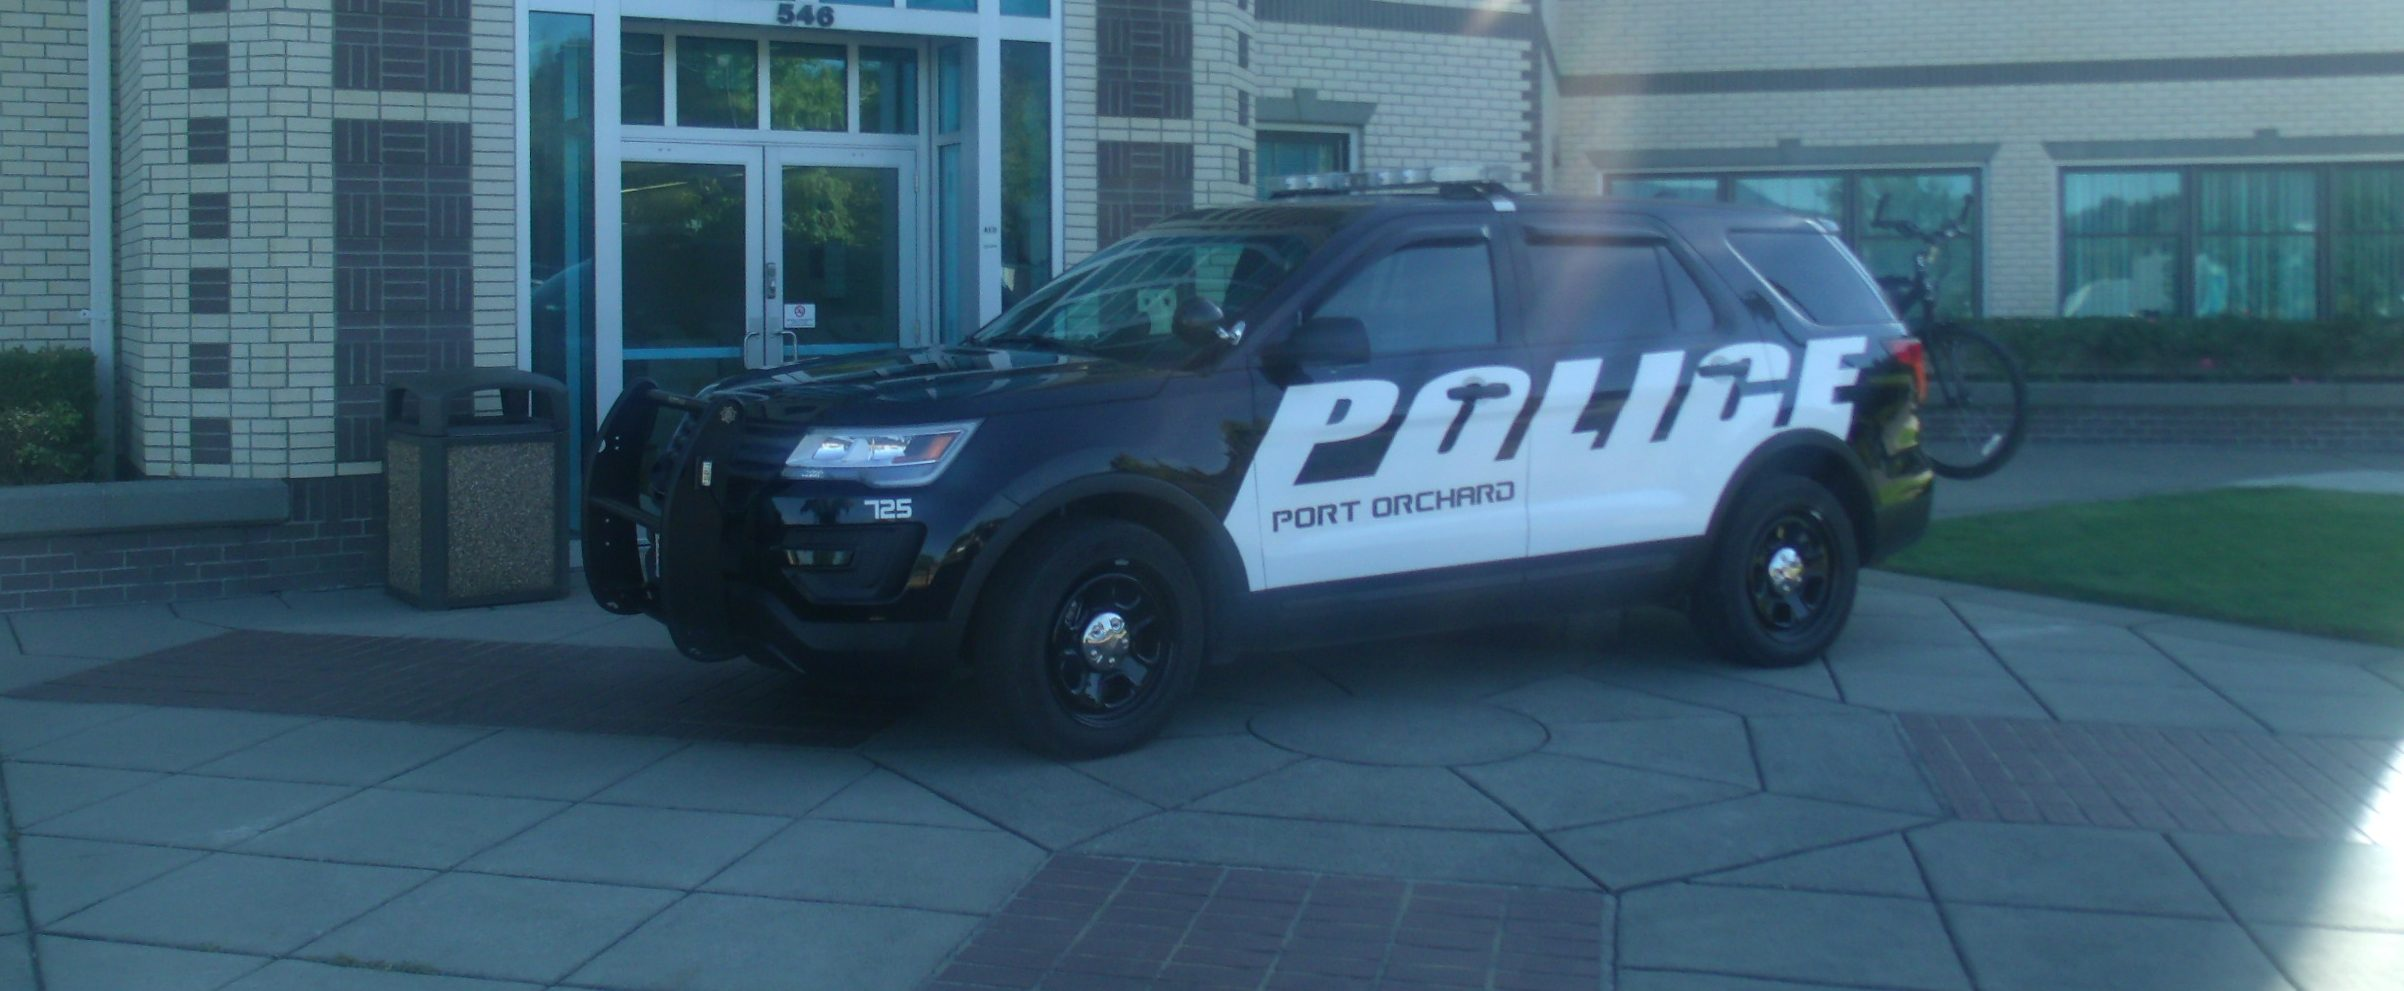 Police Department - Port Orchard